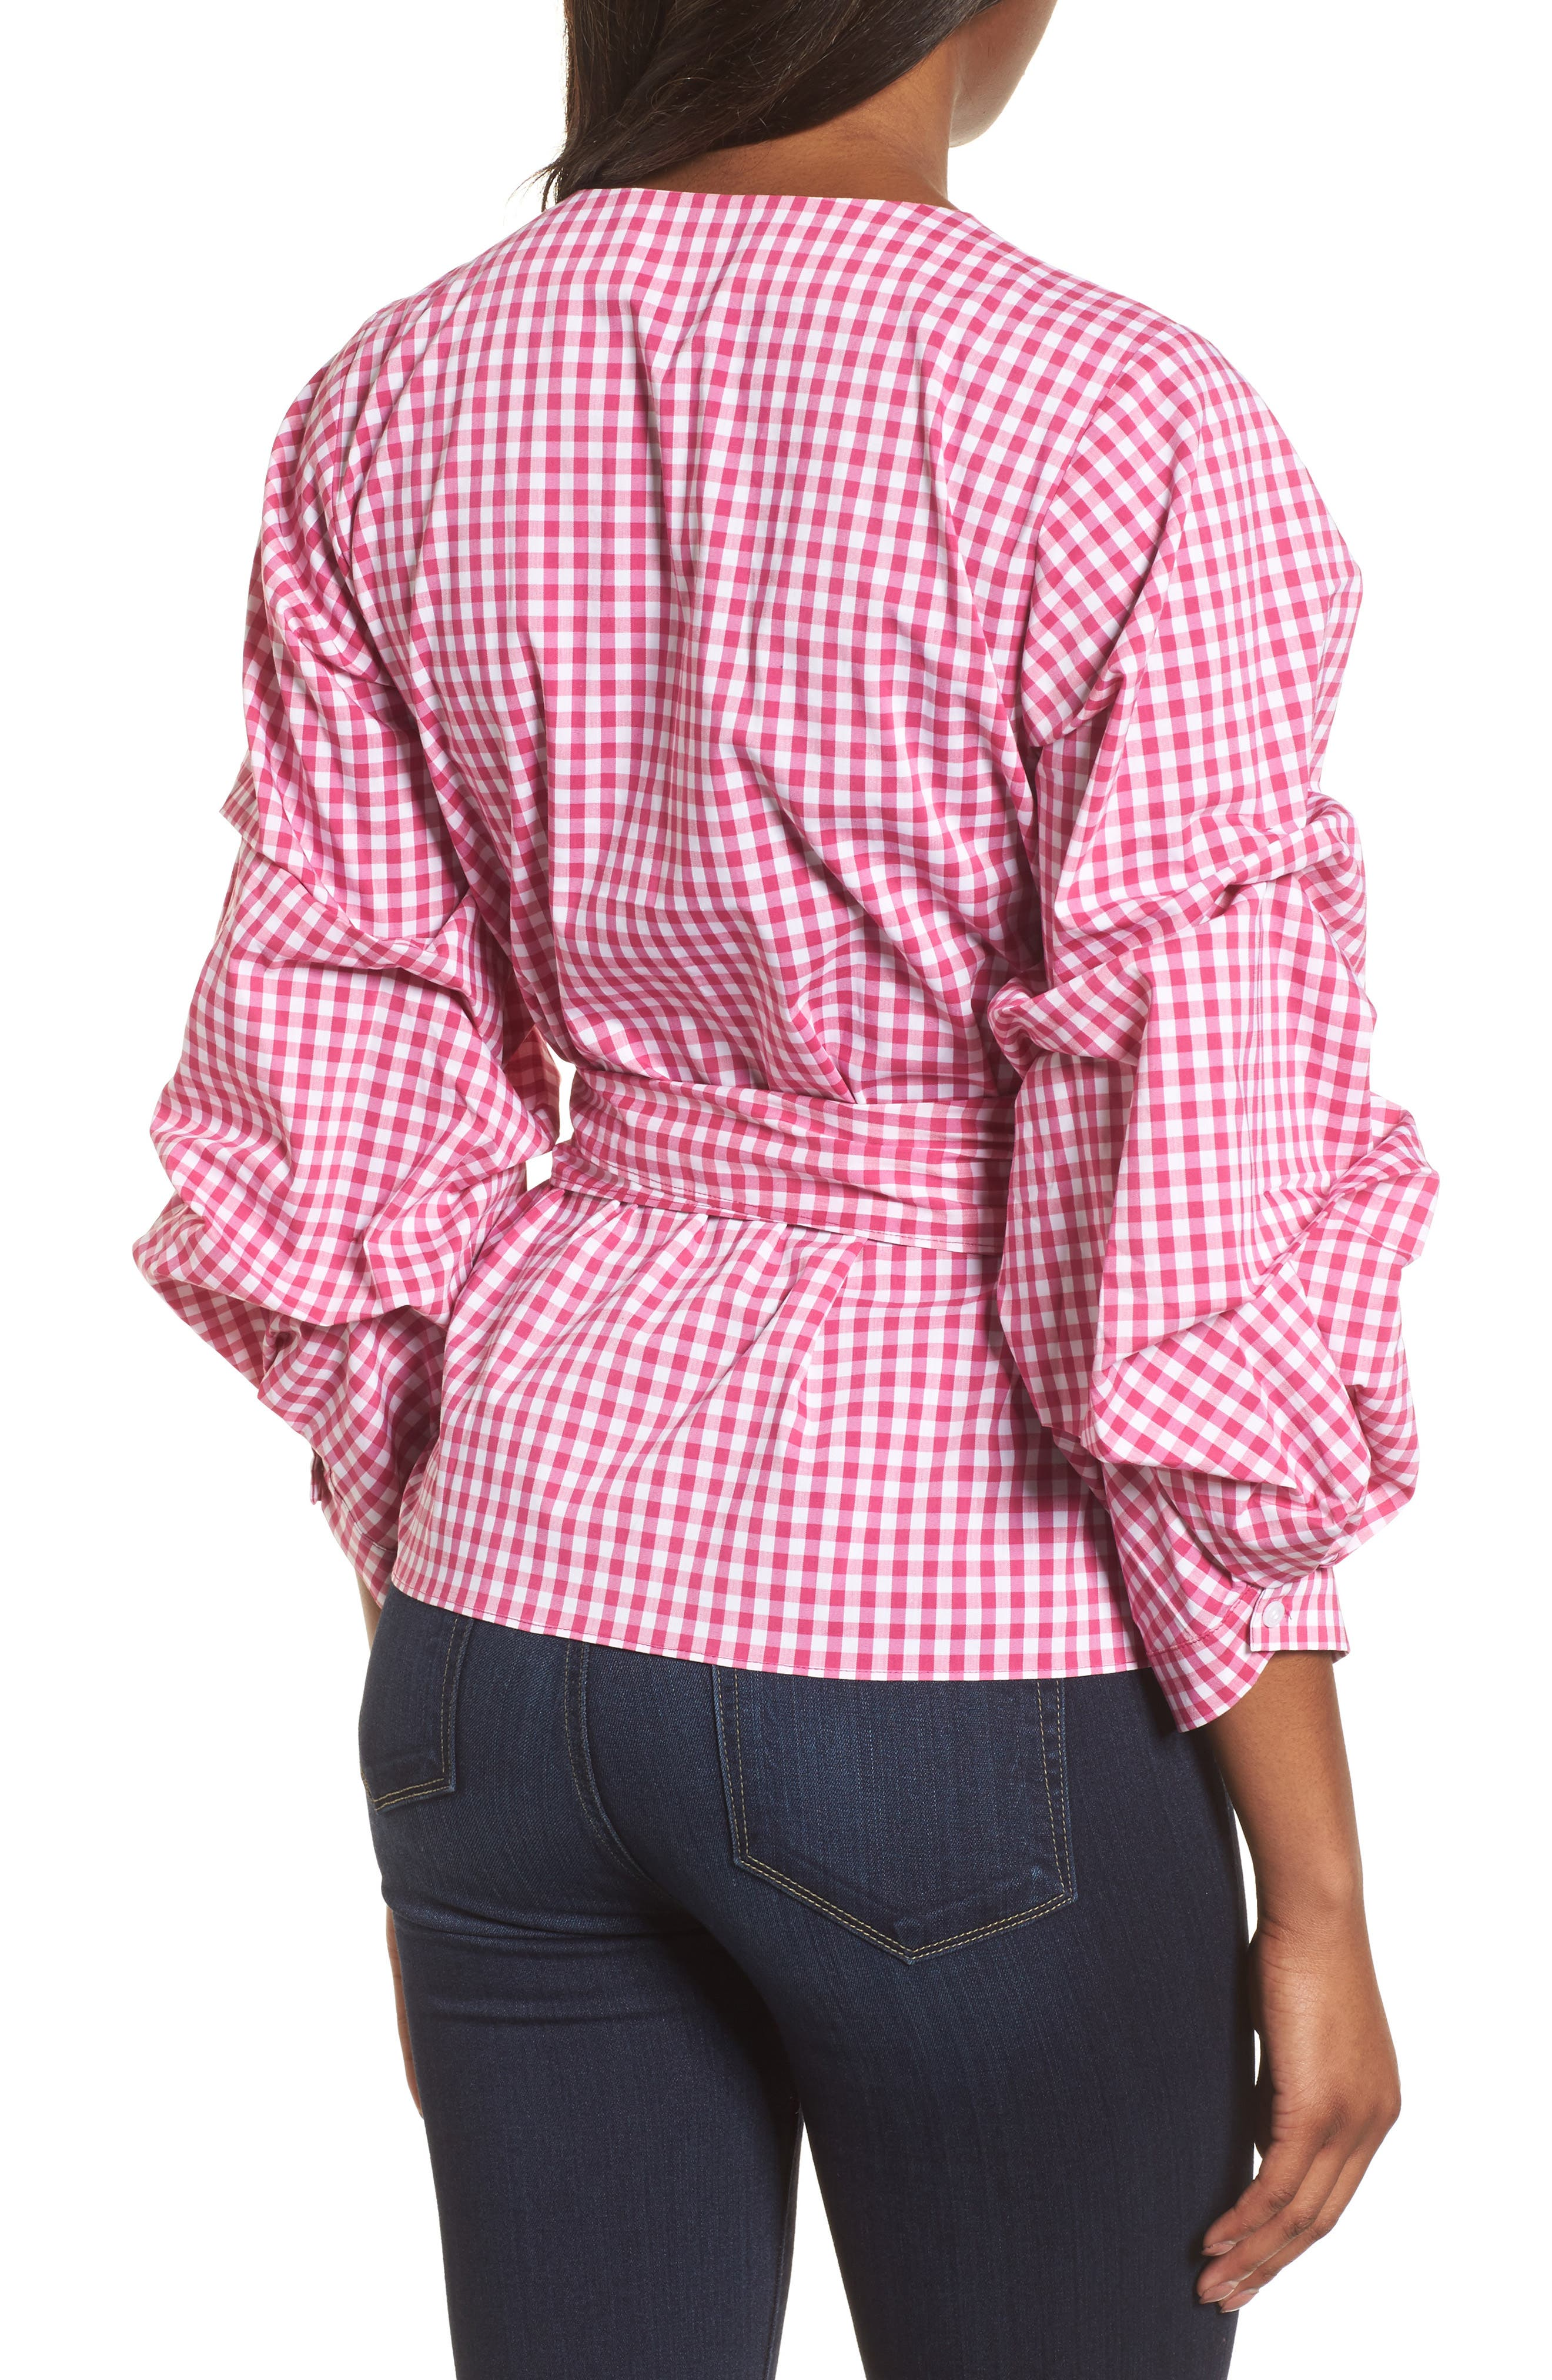 Pintuck Blouson Sleeve Wrap Top,                             Alternate thumbnail 2, color,                             Pink- White Gingham